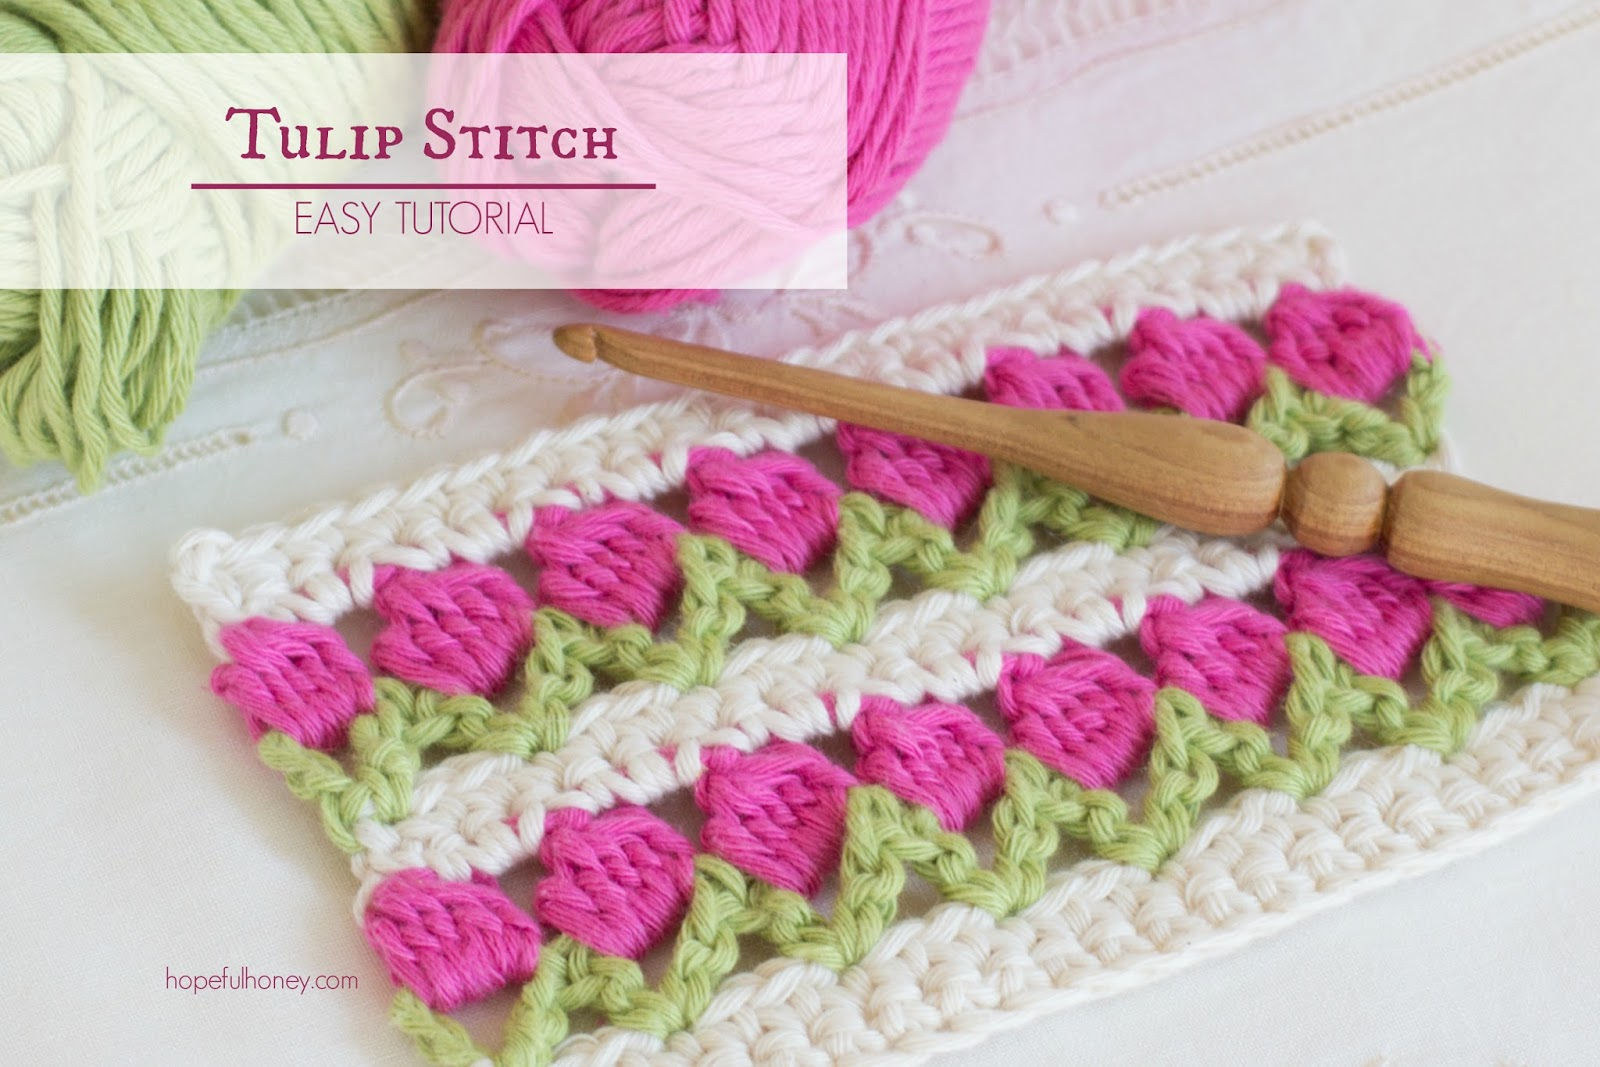 Crochet Stitches Tutorial : ... , Crochet, Create: How To: Crochet The Tulip Stitch - Easy Tutorial